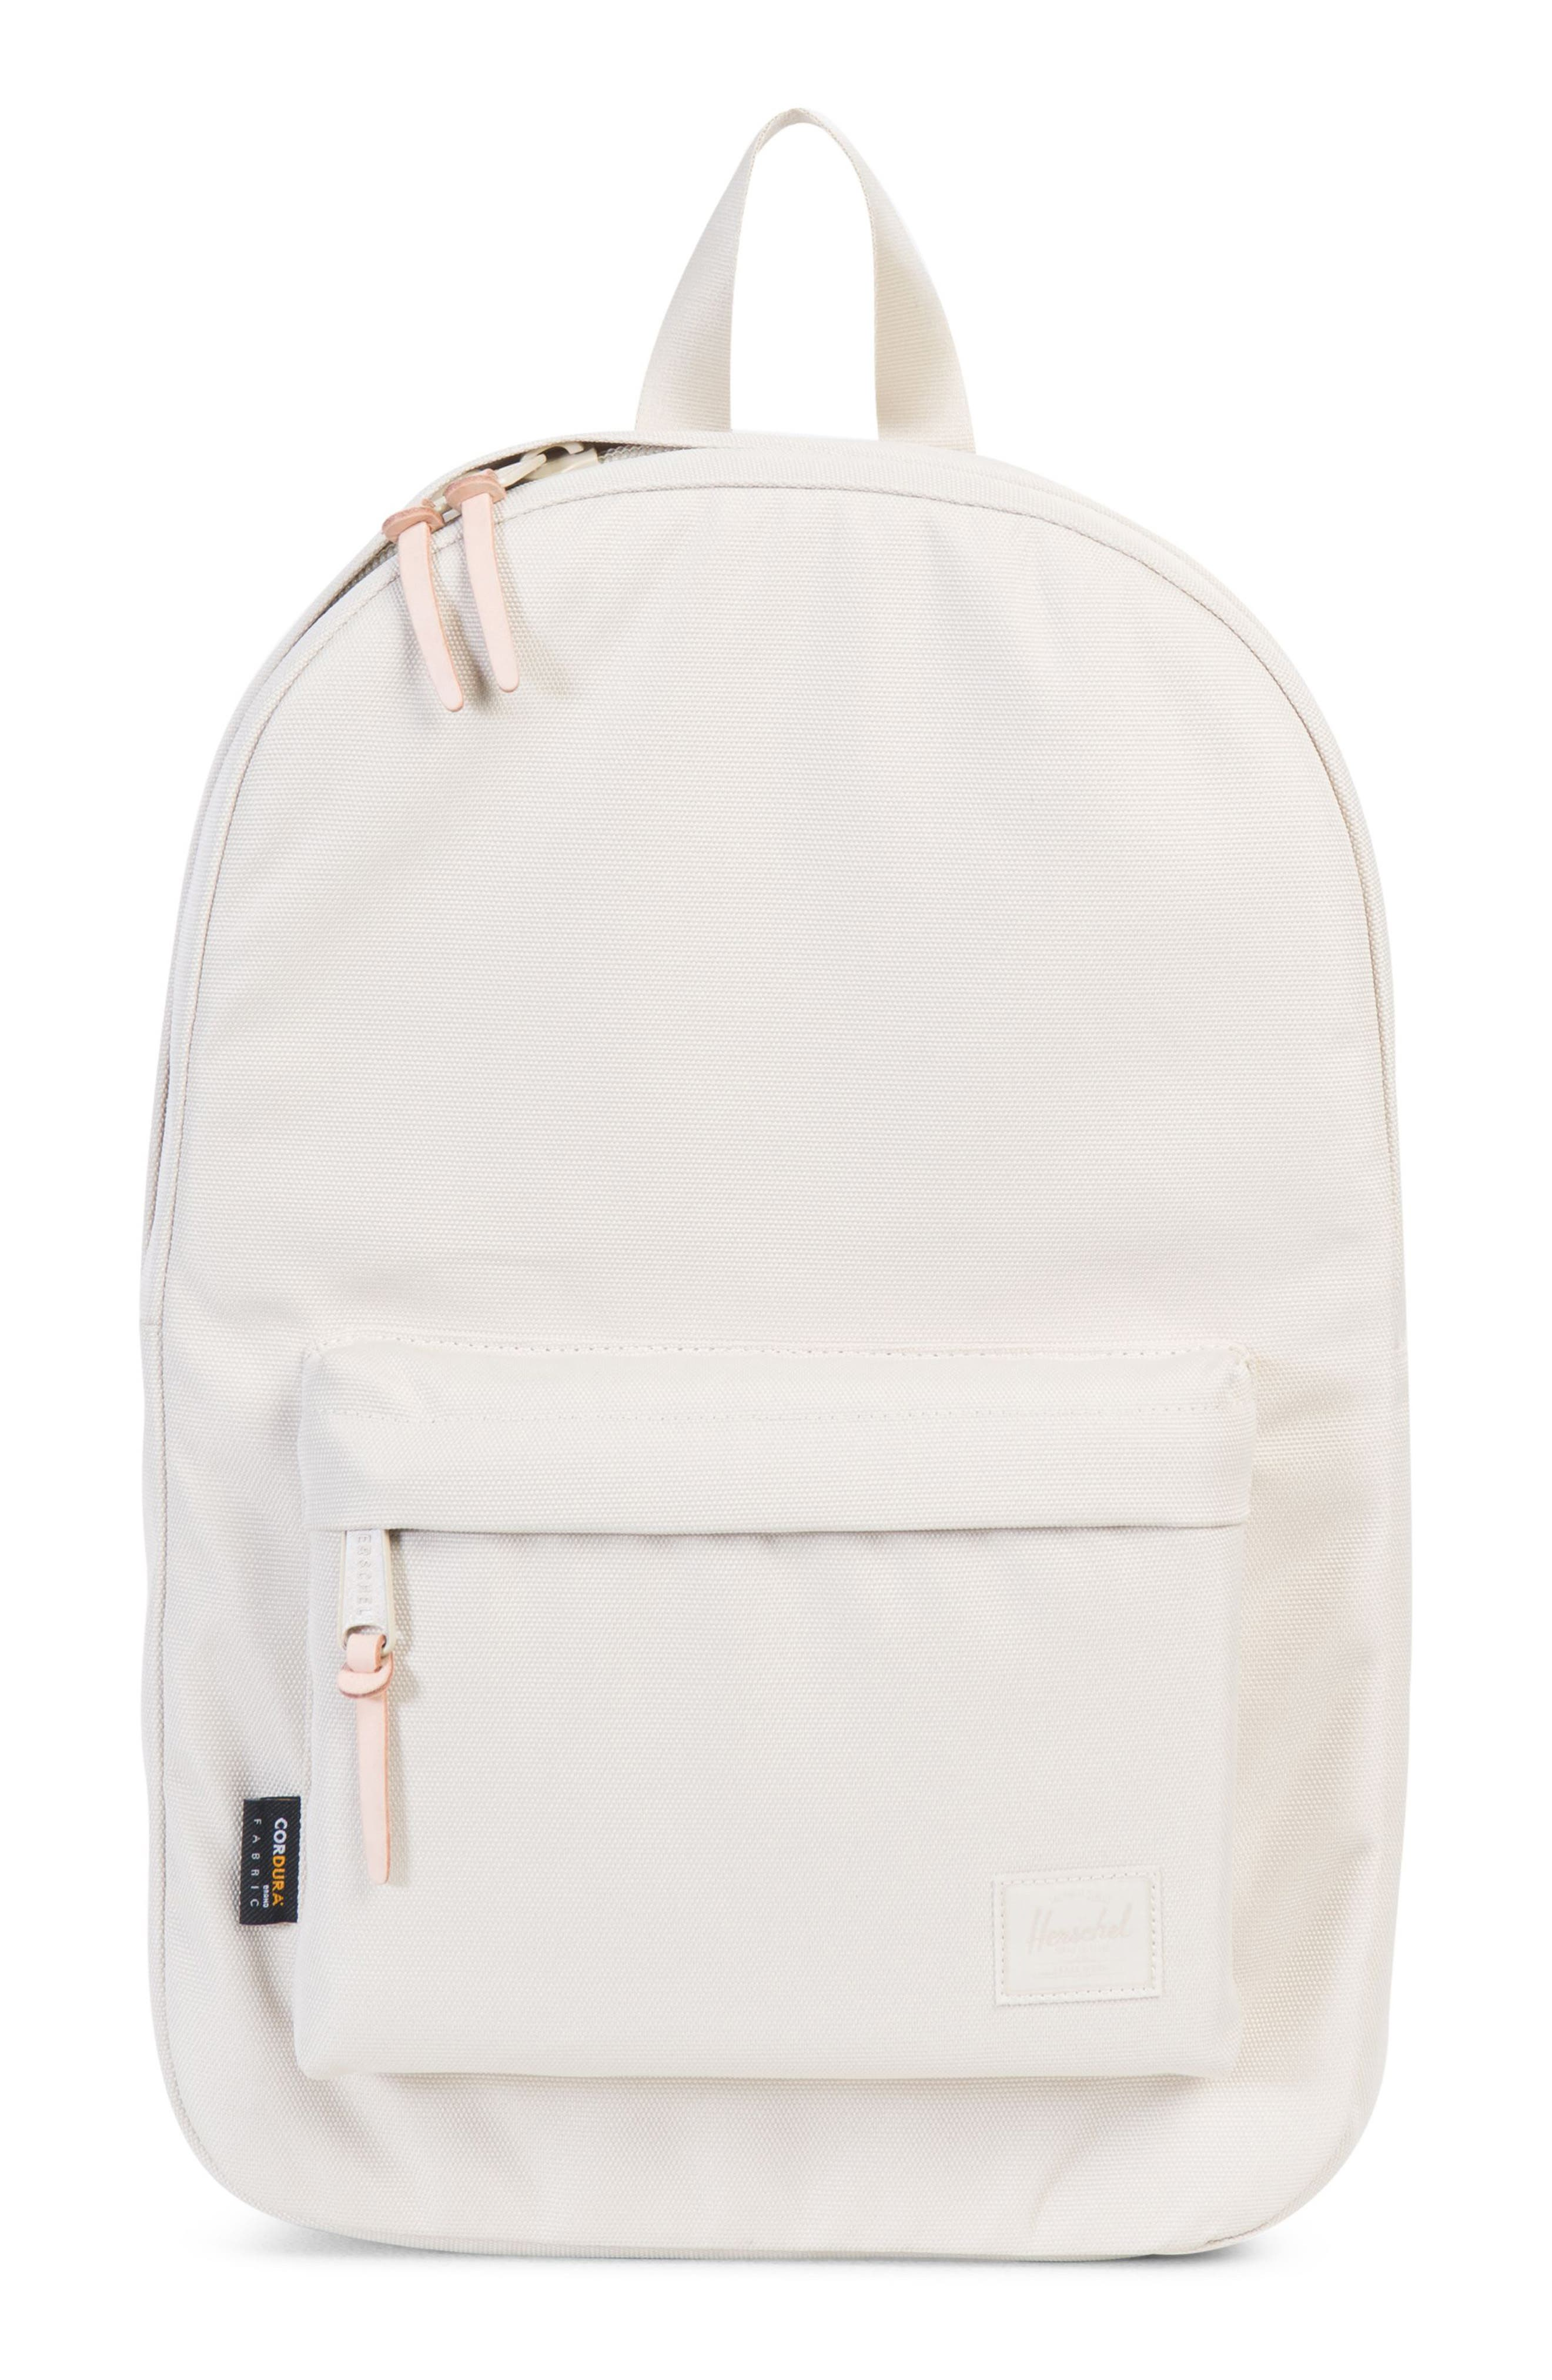 Winlaw Backpack,                             Main thumbnail 1, color,                             122